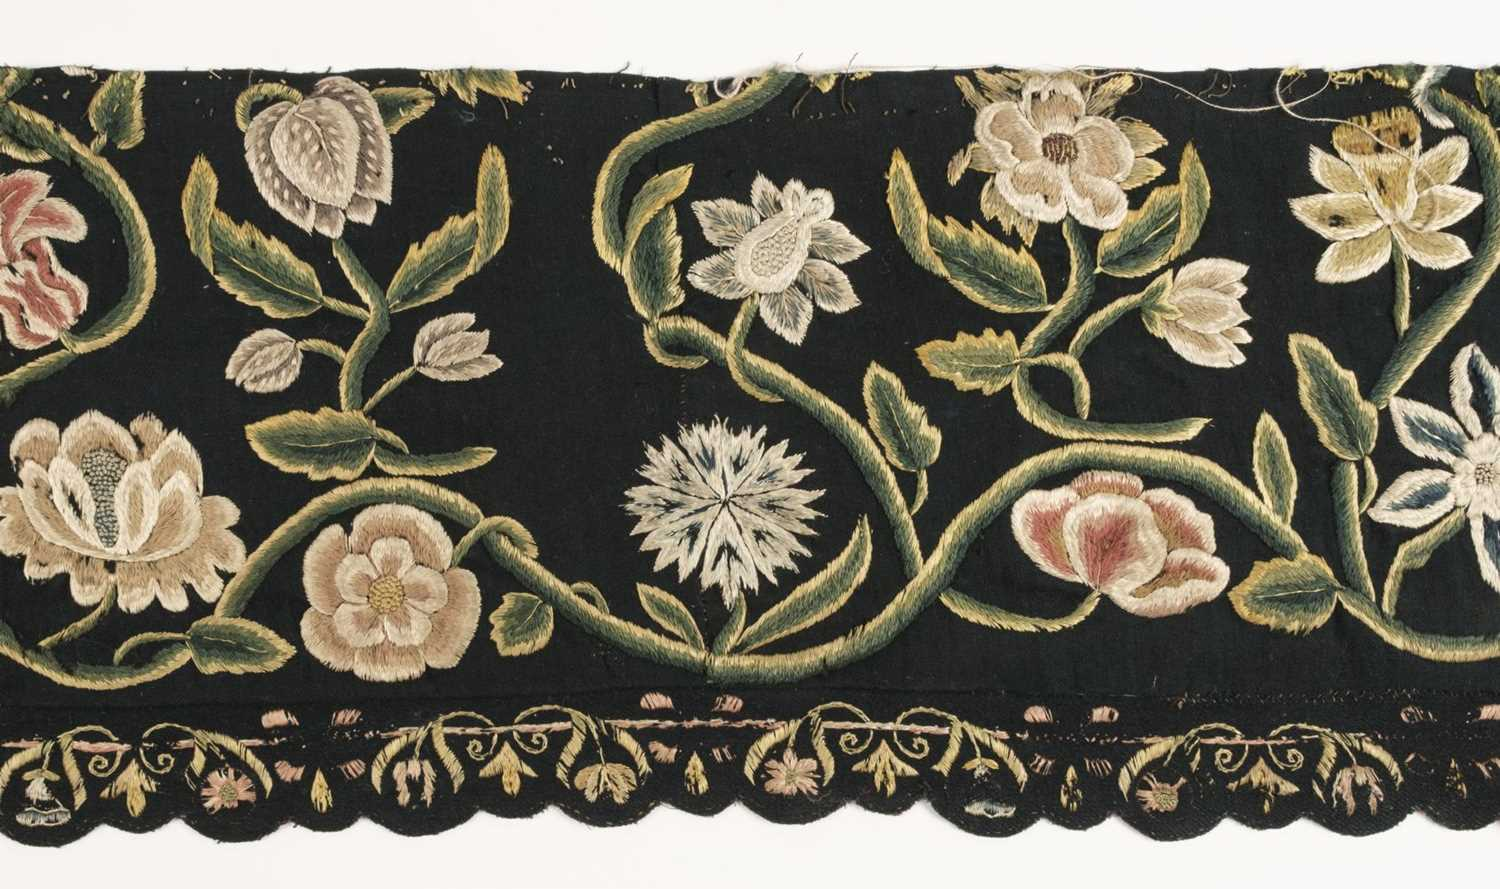 Lot 246 - Embroideries. Four fragments of embroidery, probably Dutch, second half of the 17th century